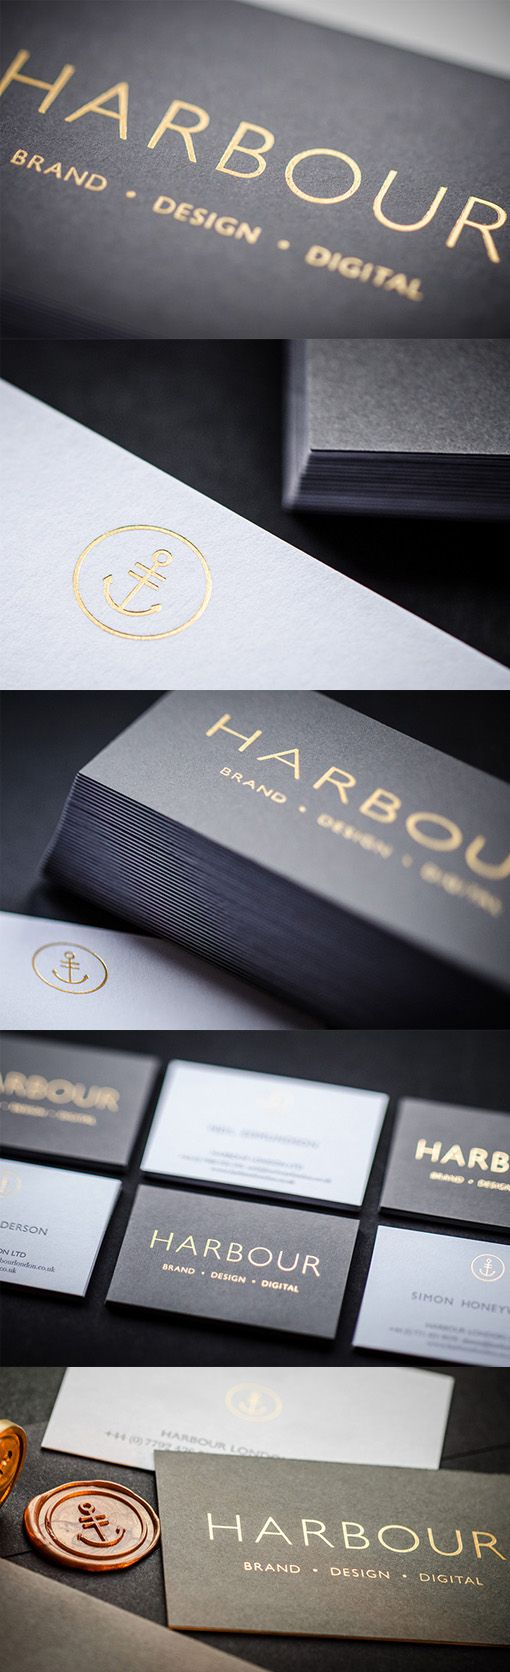 This set of business cards has a stylish and professional look brought on by a combination of minimalist styling, controlled use of gold foiling and a black and white colour scheme.